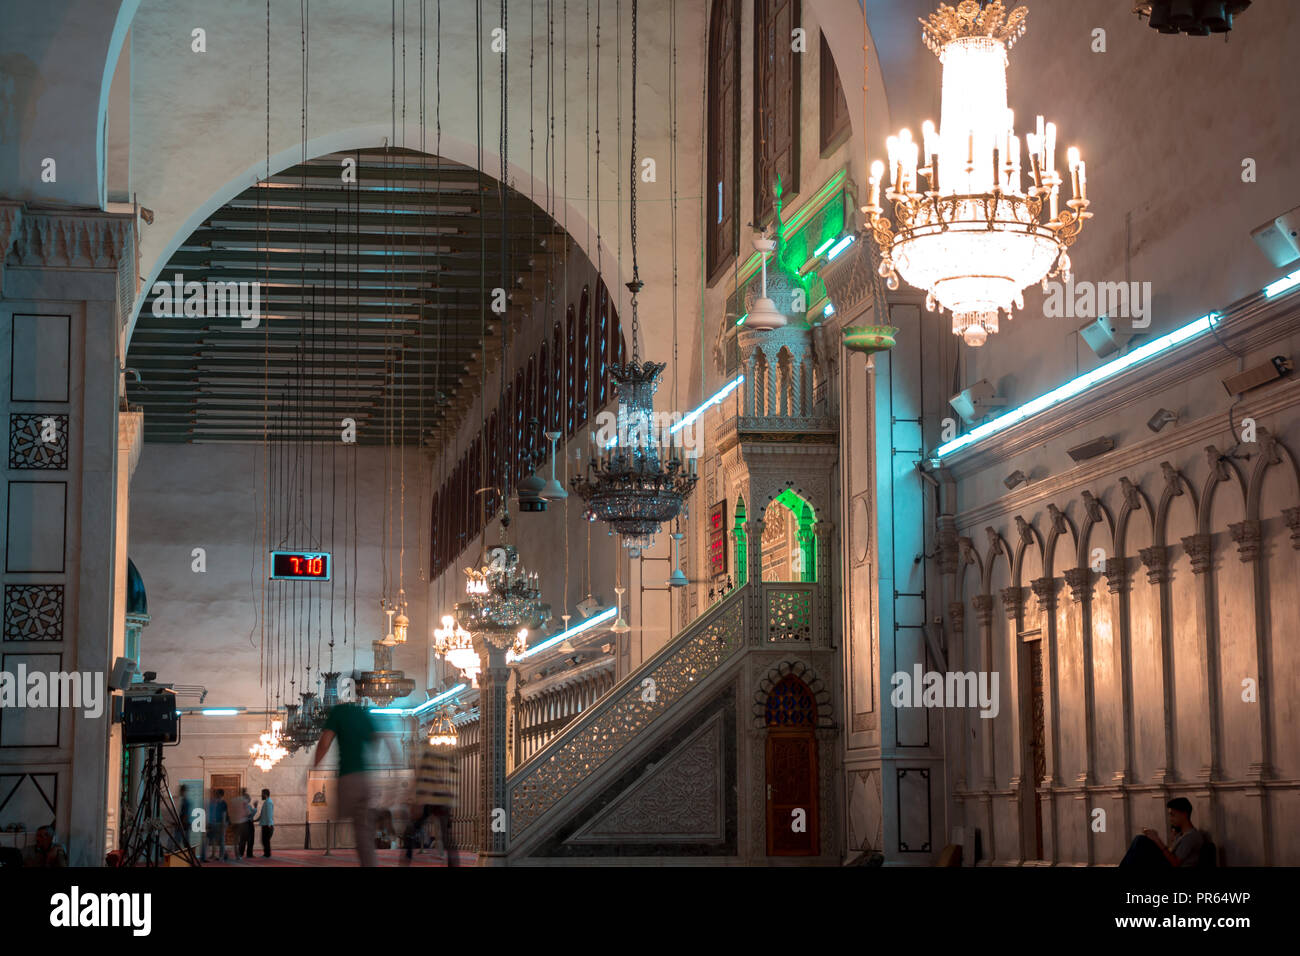 Damascus / Syria: inside the Umayyad mosque in the old city. Stock Photo